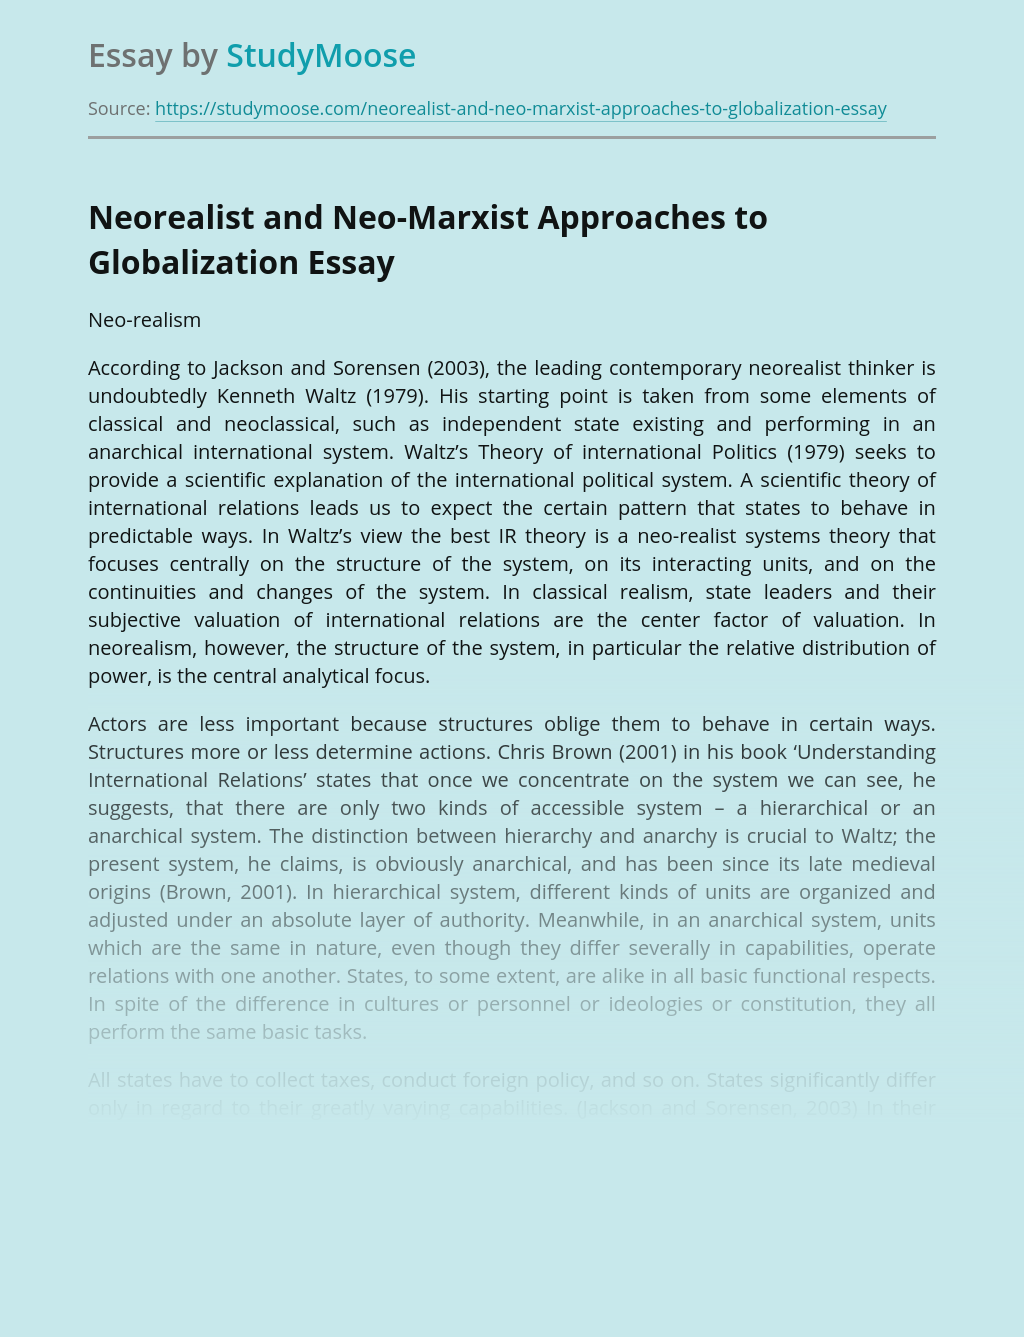 Neorealist and Neo-Marxist Approaches to Globalization